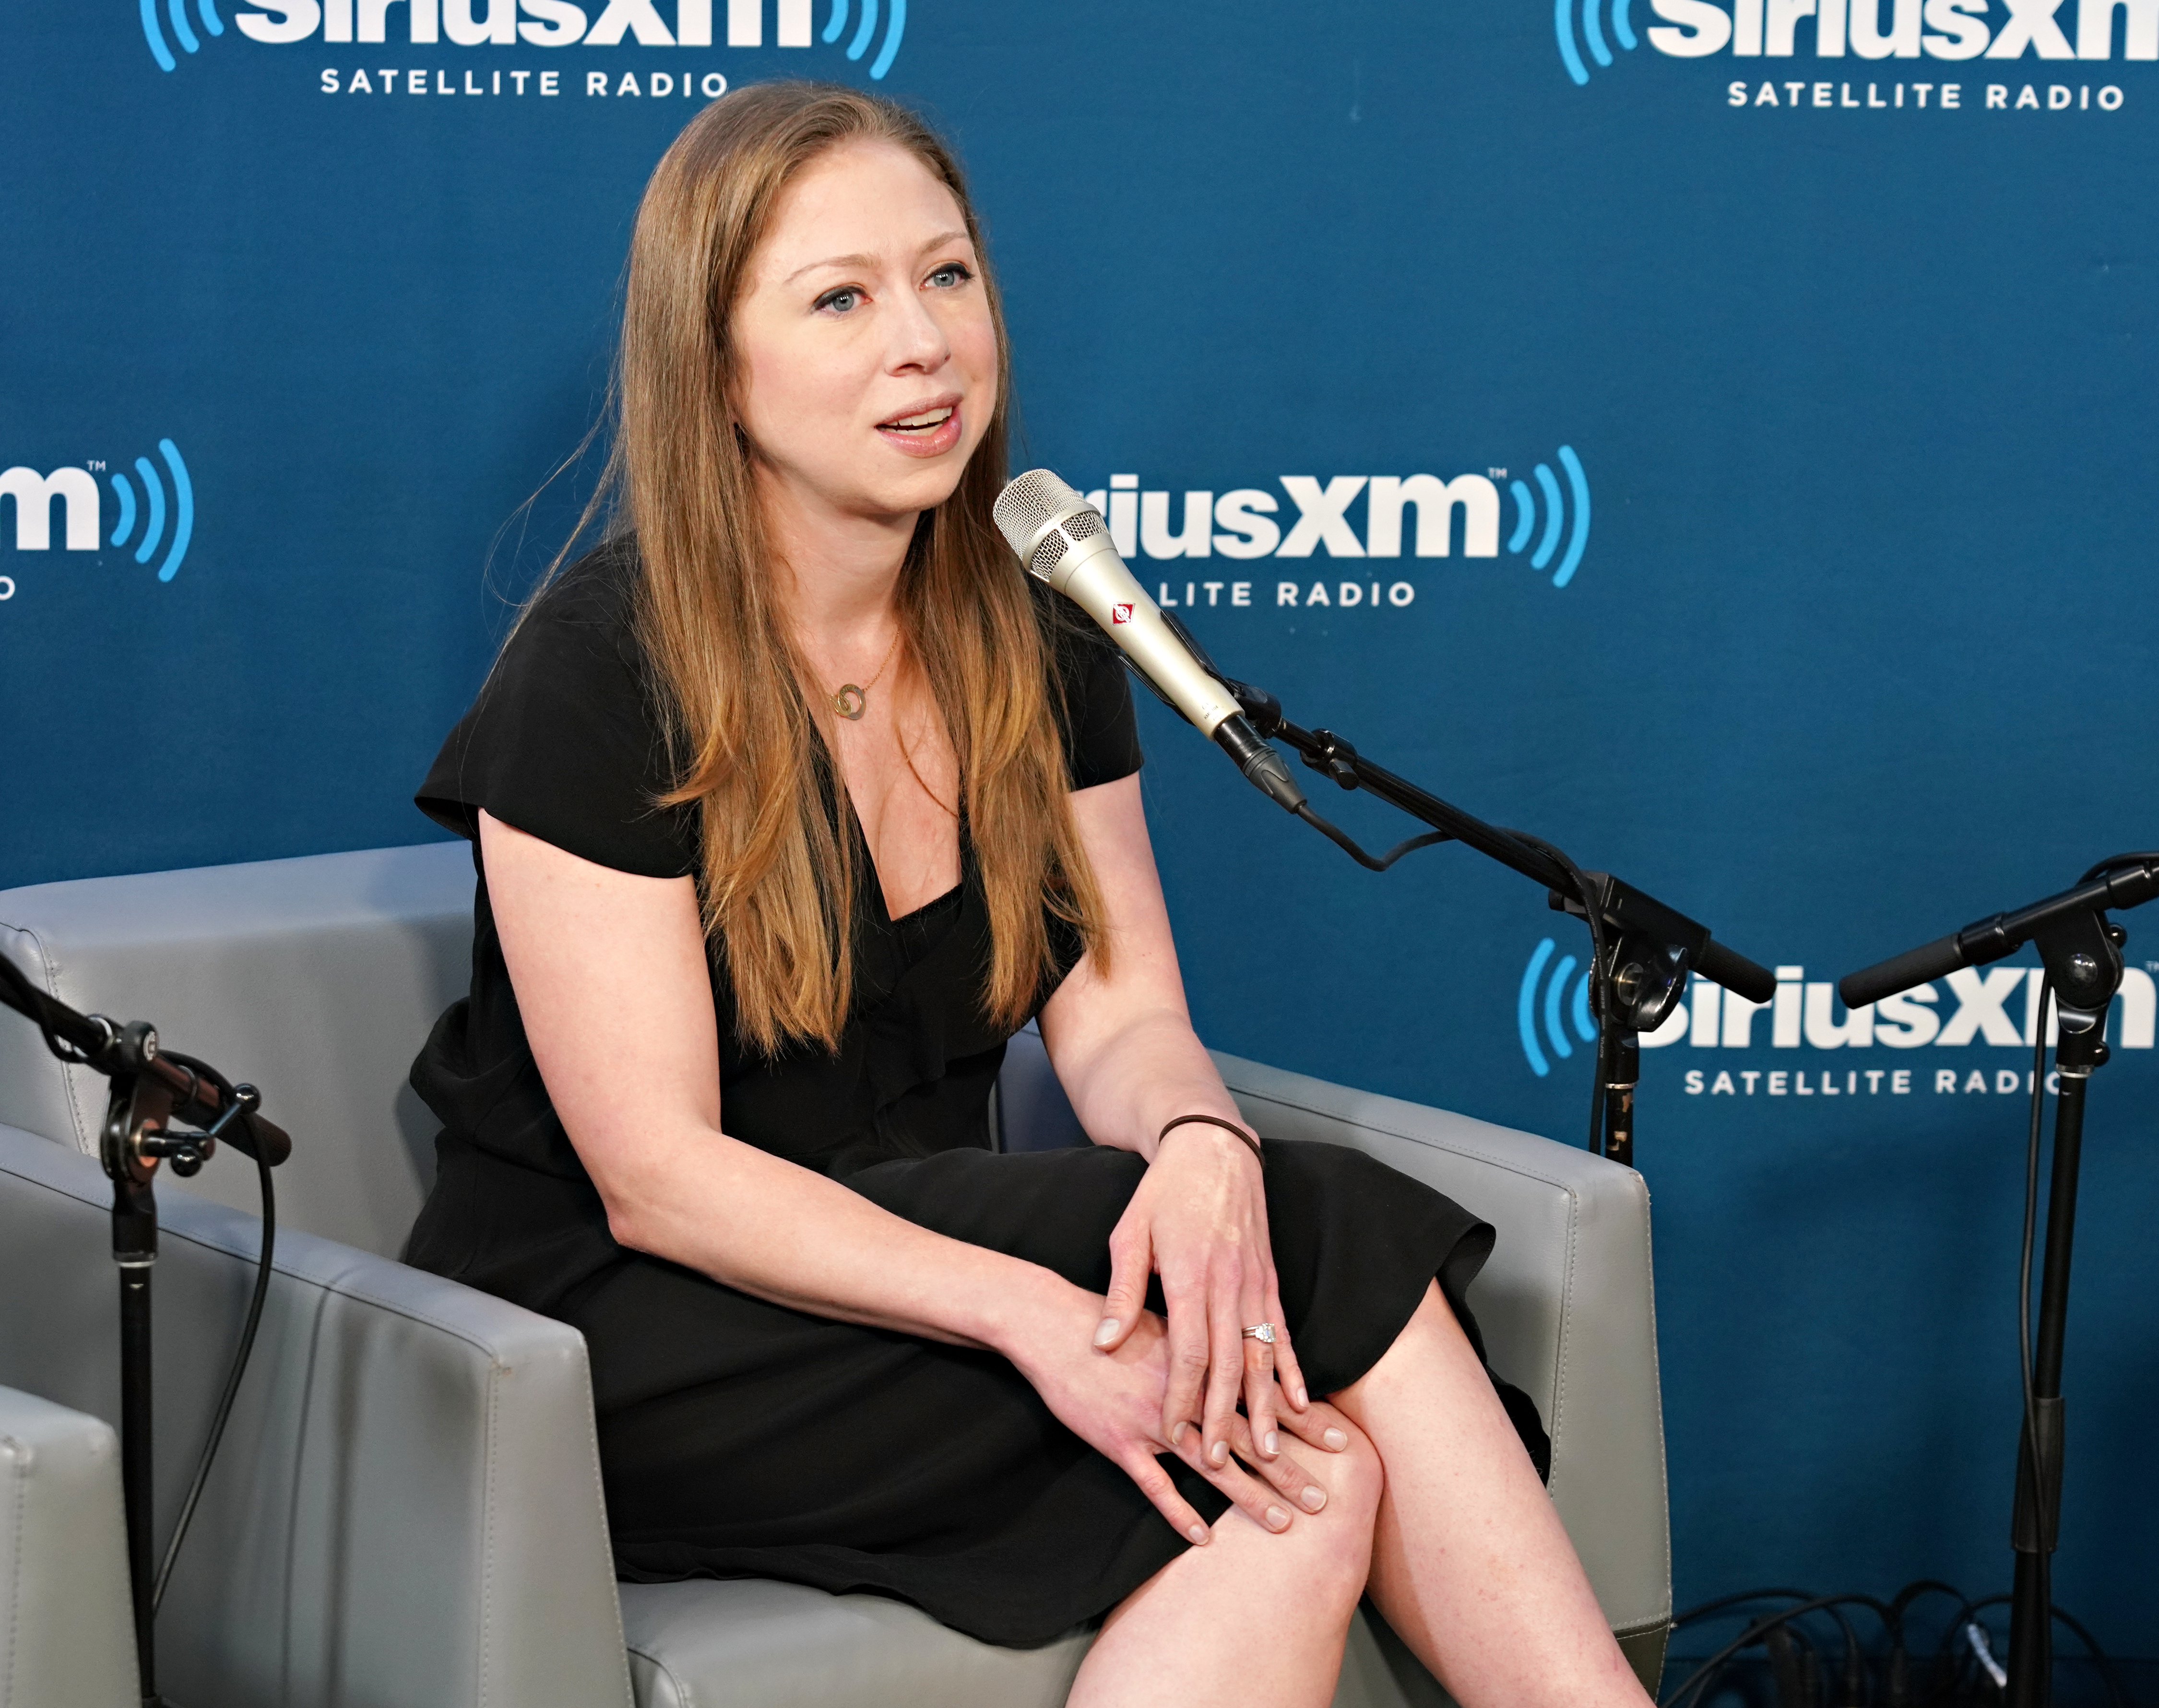 Chelsea Clinton speaks at SiriusXM with Nancy Northup and hosts Zerlina Maxwell and Jess McIntosh at the SiriusXM Studio on September 13, 2018 in New York City.